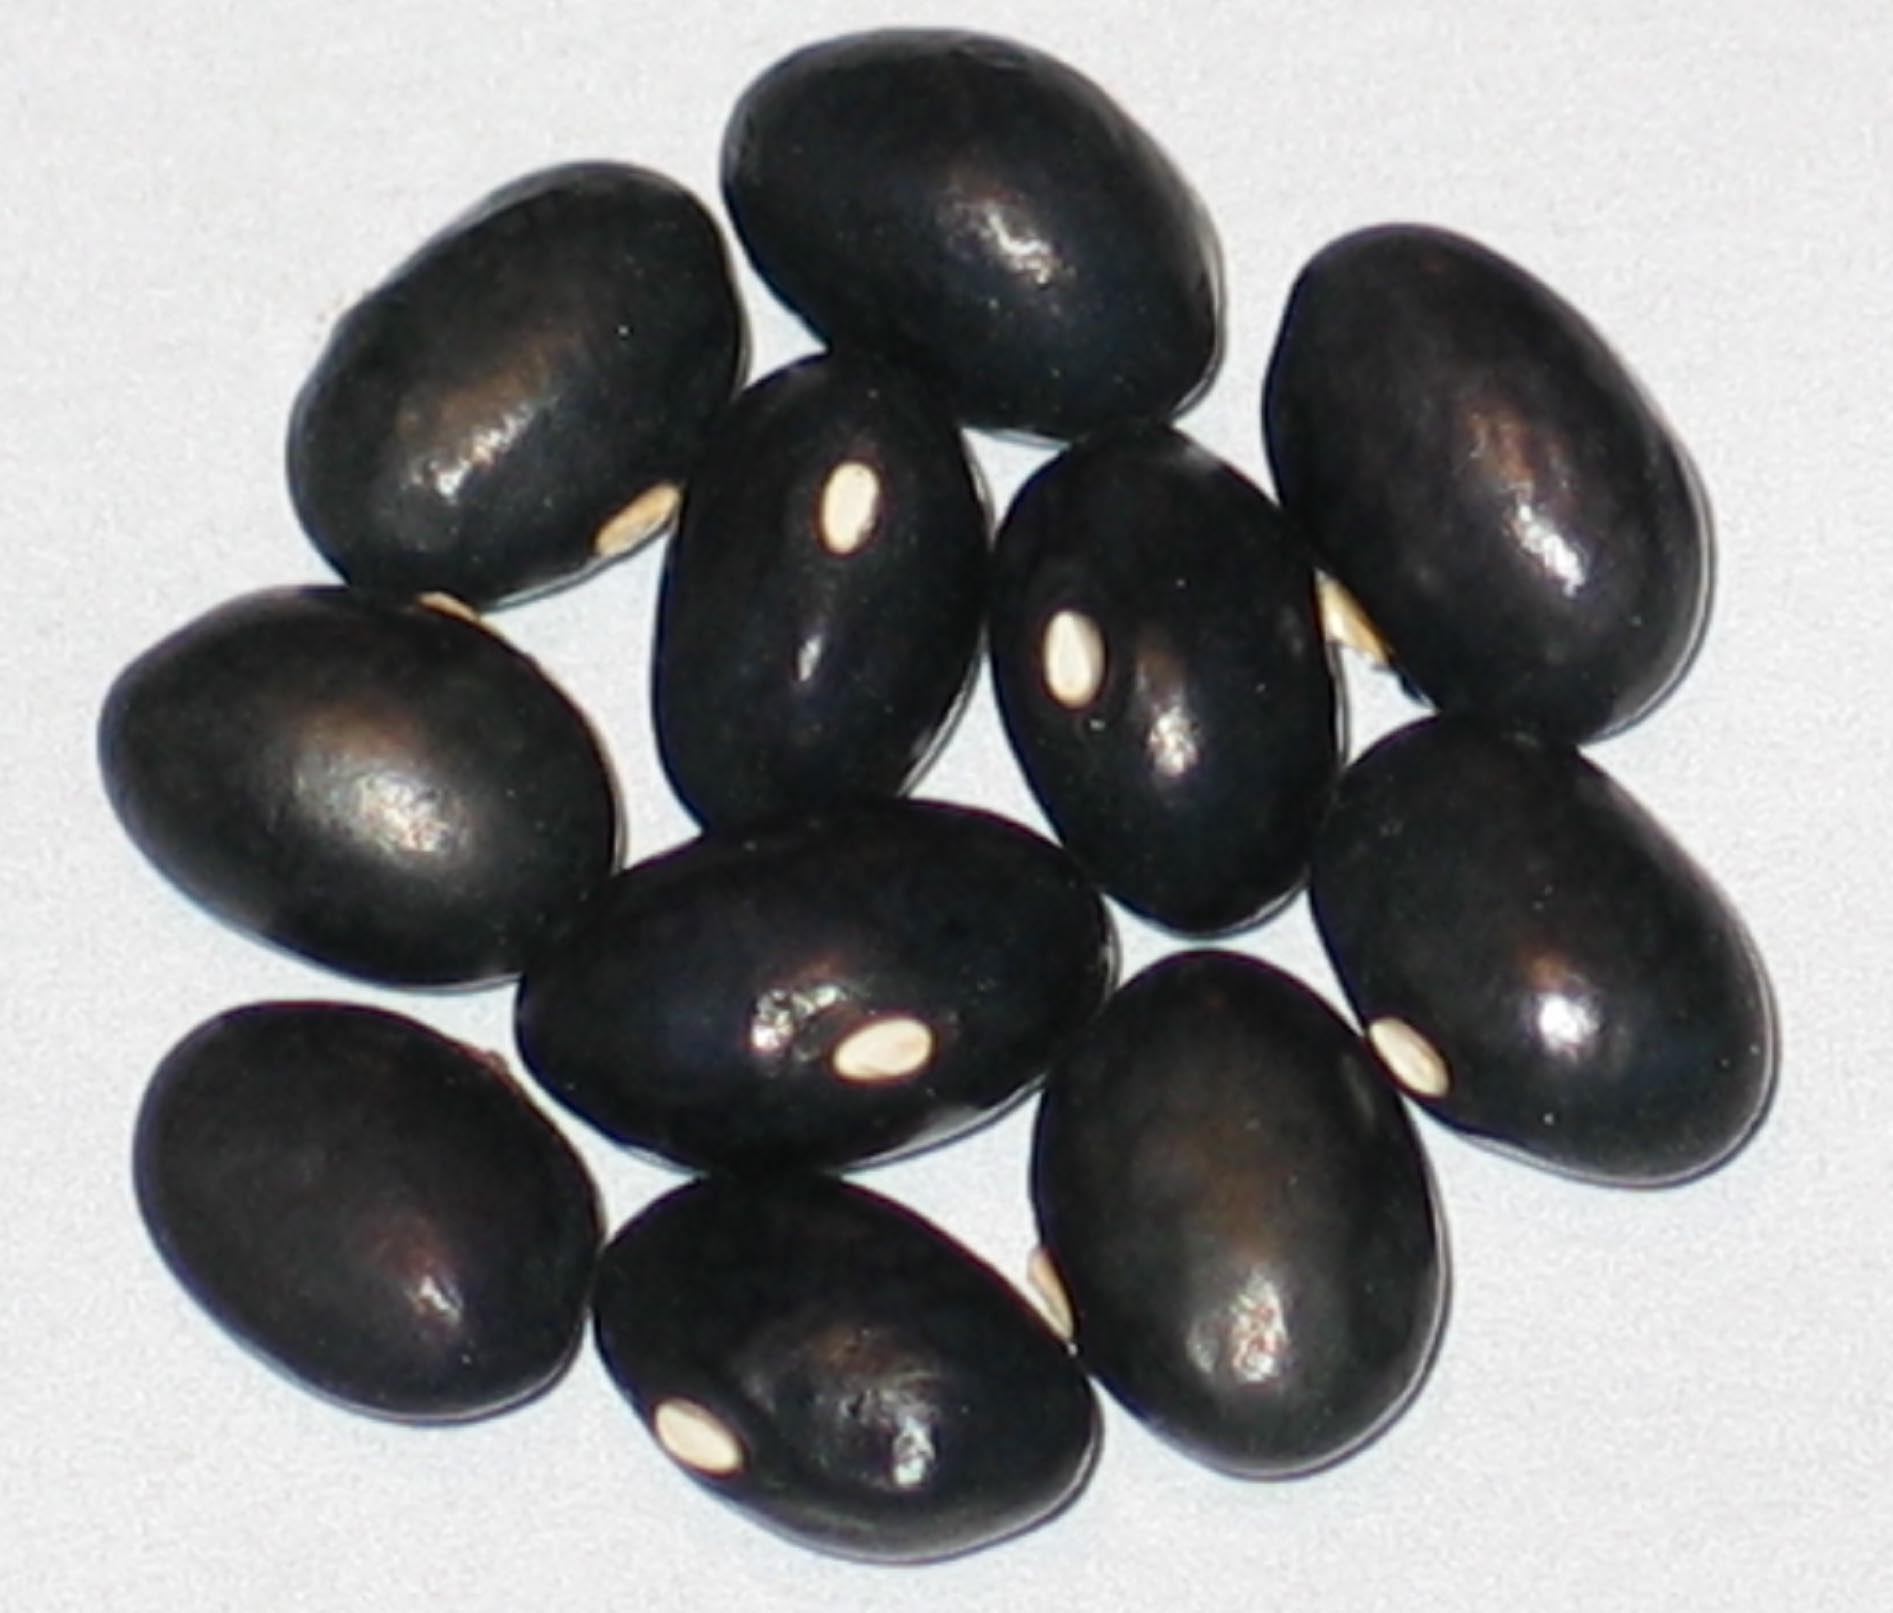 image of Black Horse beans